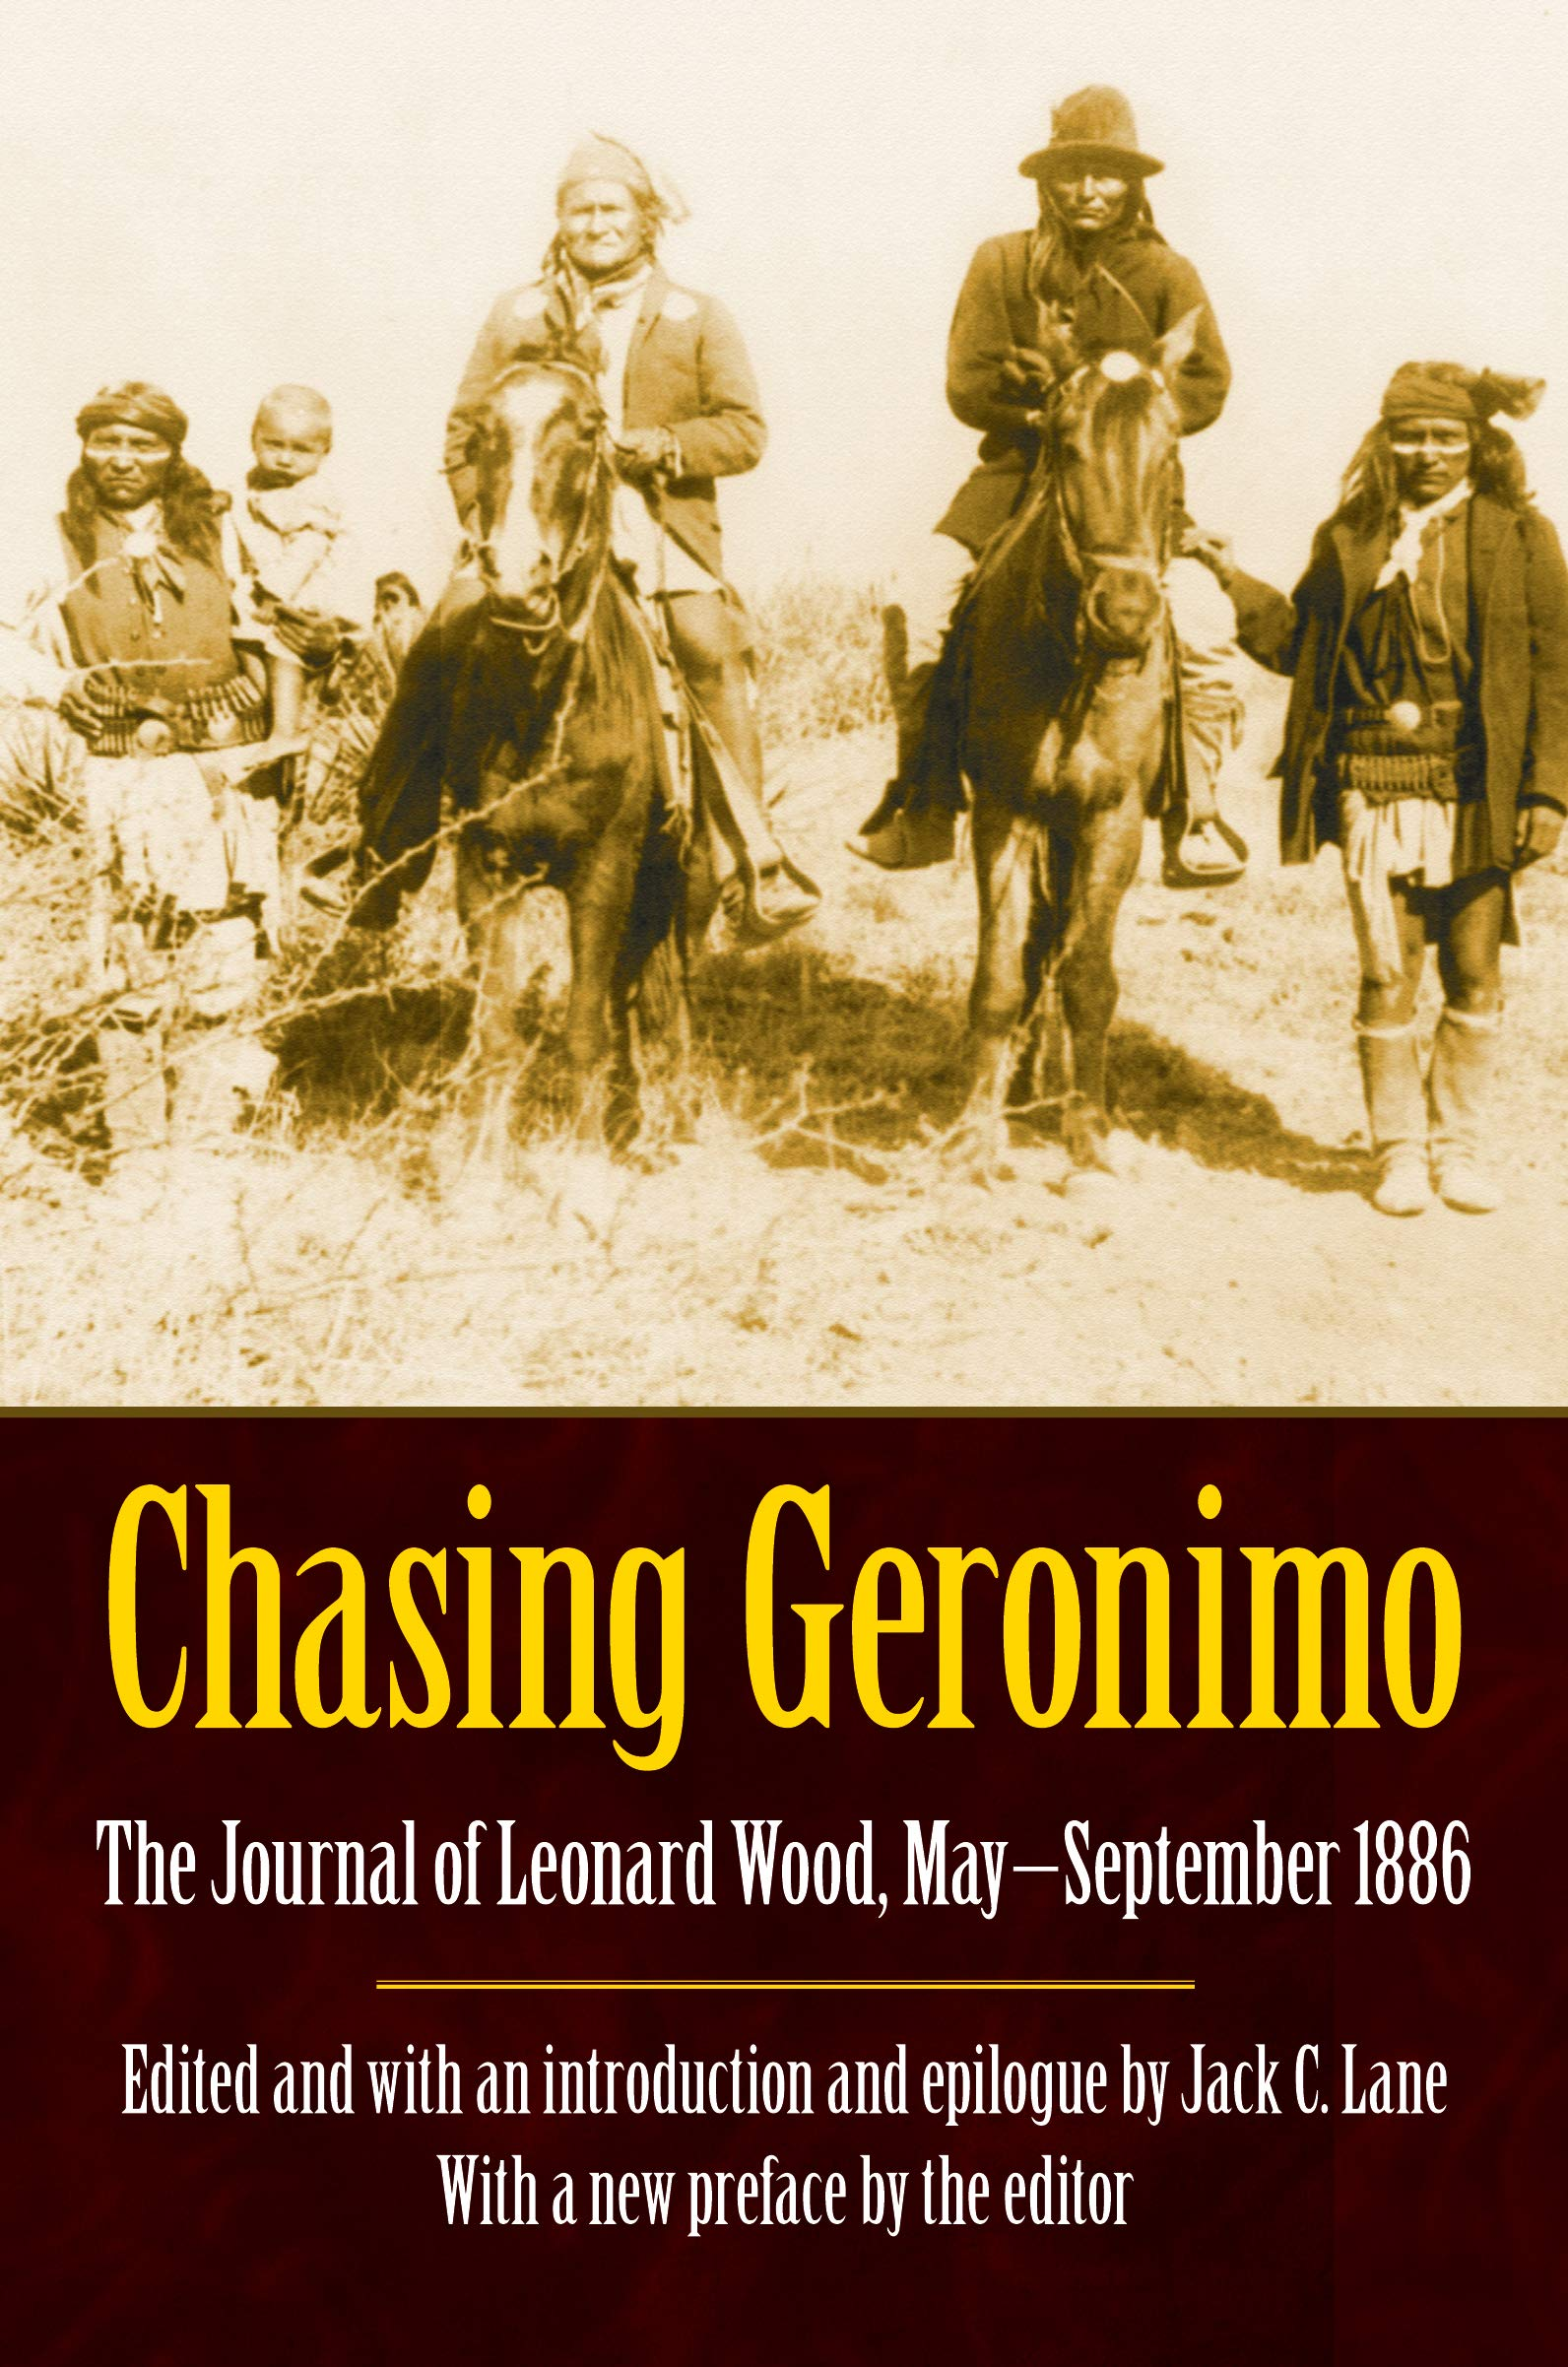 Chasing Geronimo: The Journal of Leonard Wood, May-September 1886